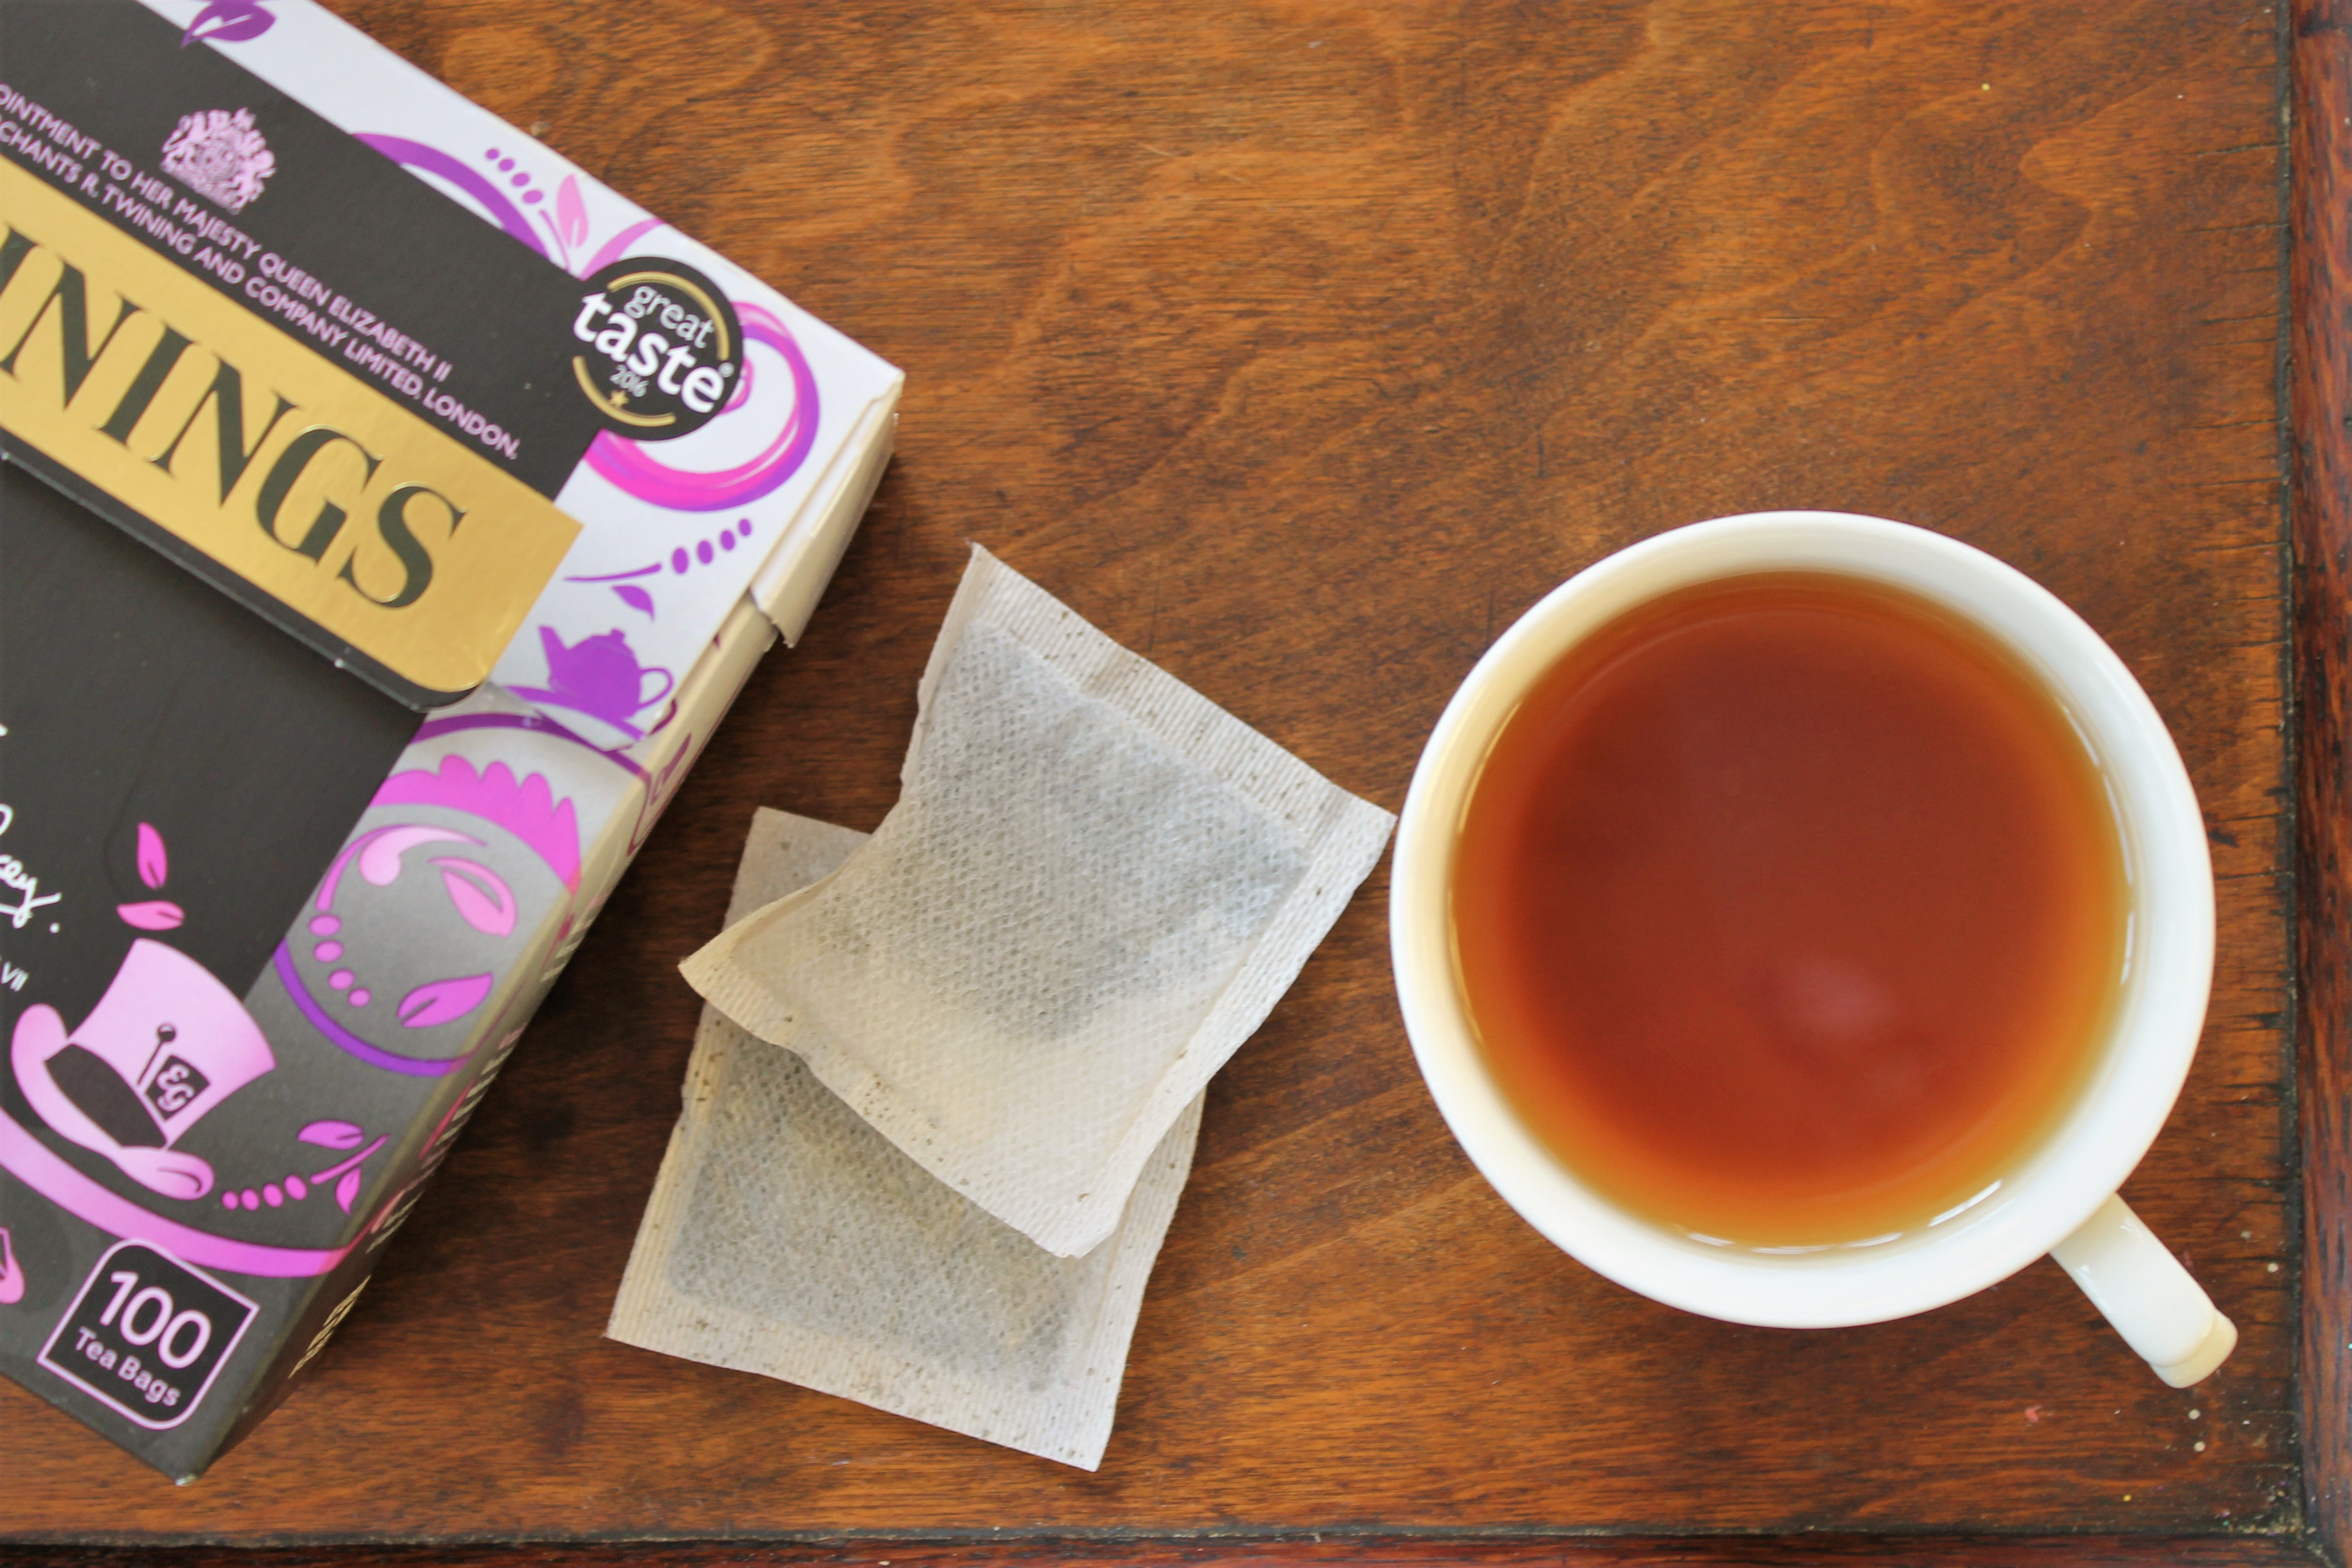 Twinings Earl Grey Tea Review